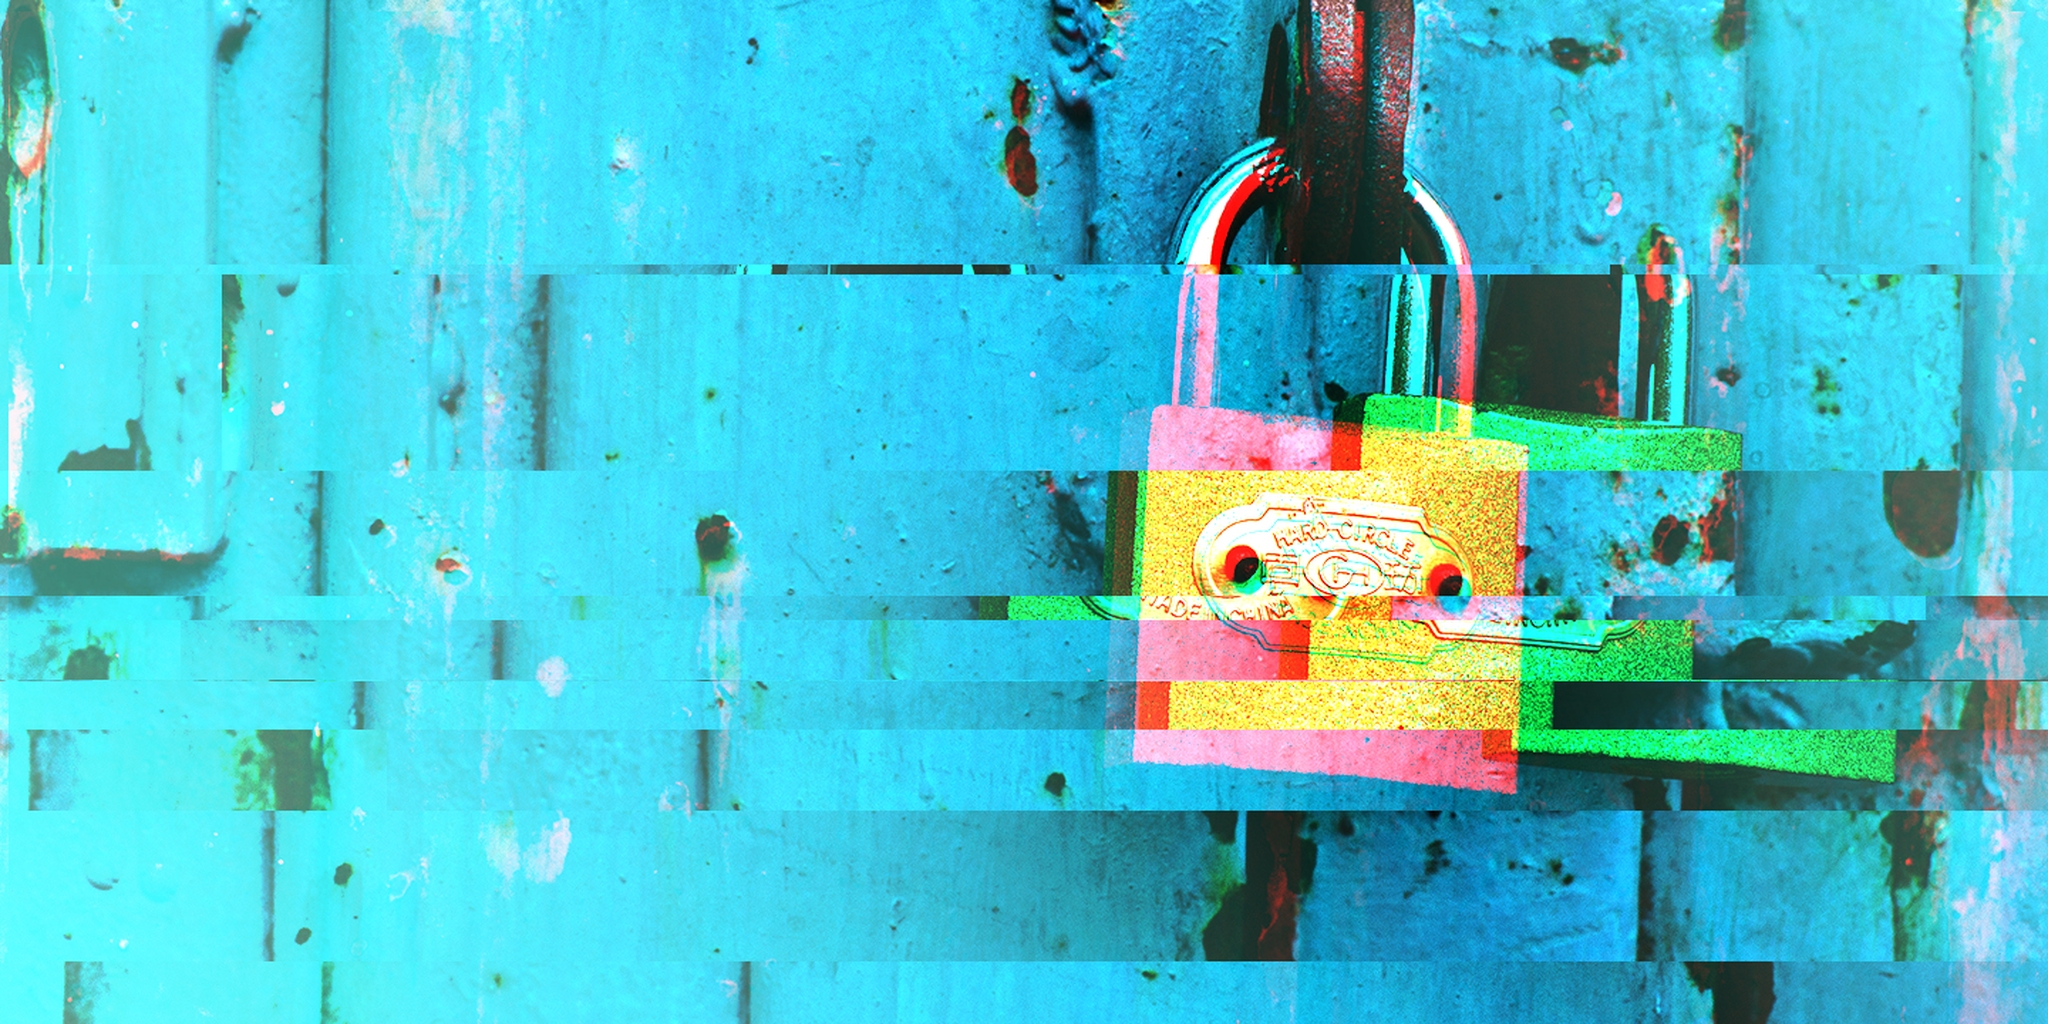 glitched image of a lock